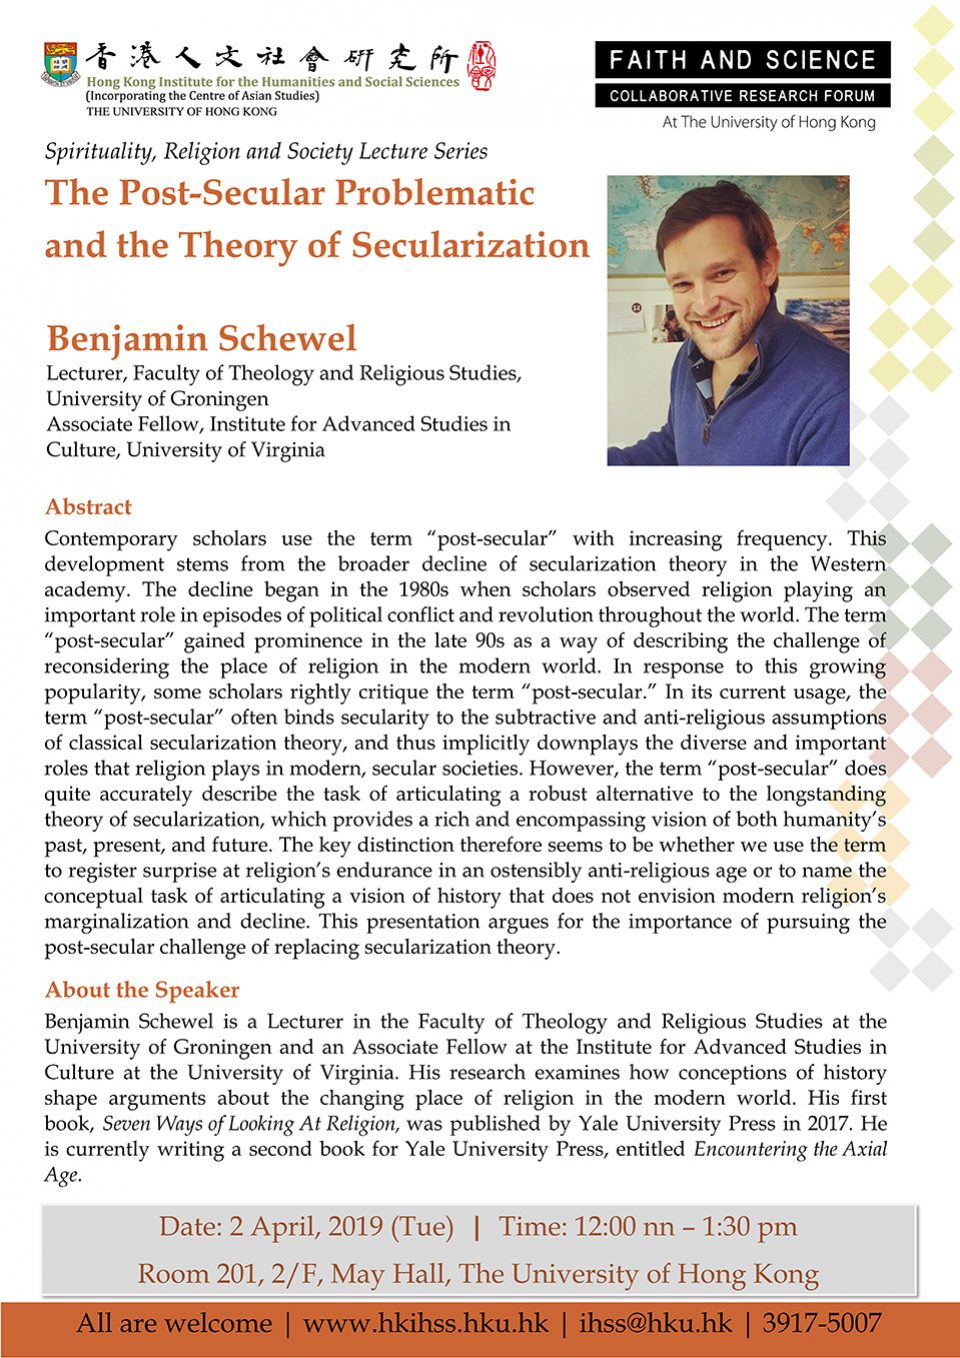 Spirituality, Religion and Society Lecture Series: